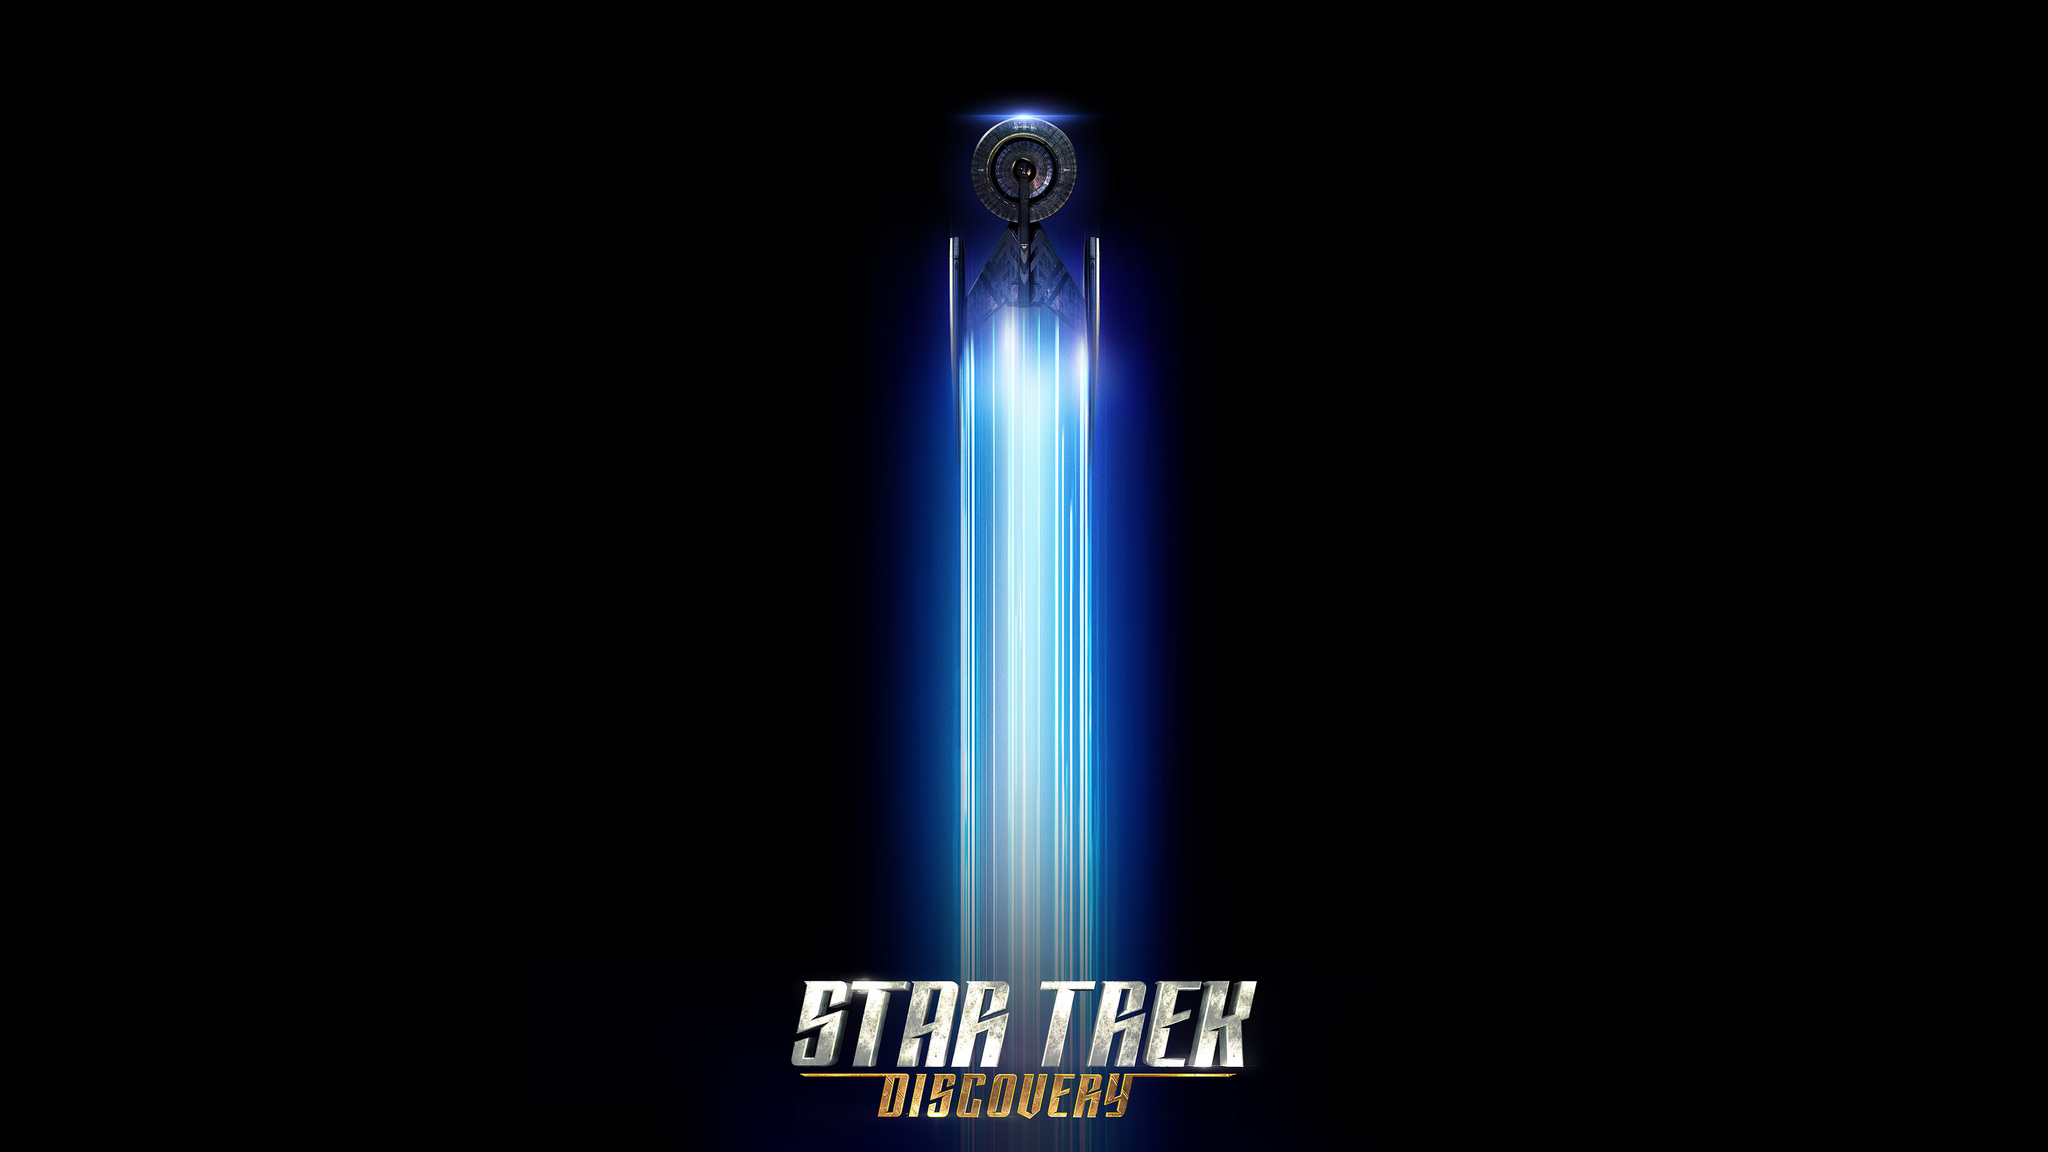 Star Trek Discovery Wallpaper Hd: 2048x1152 Star Trek Discovery 4k 2048x1152 Resolution HD